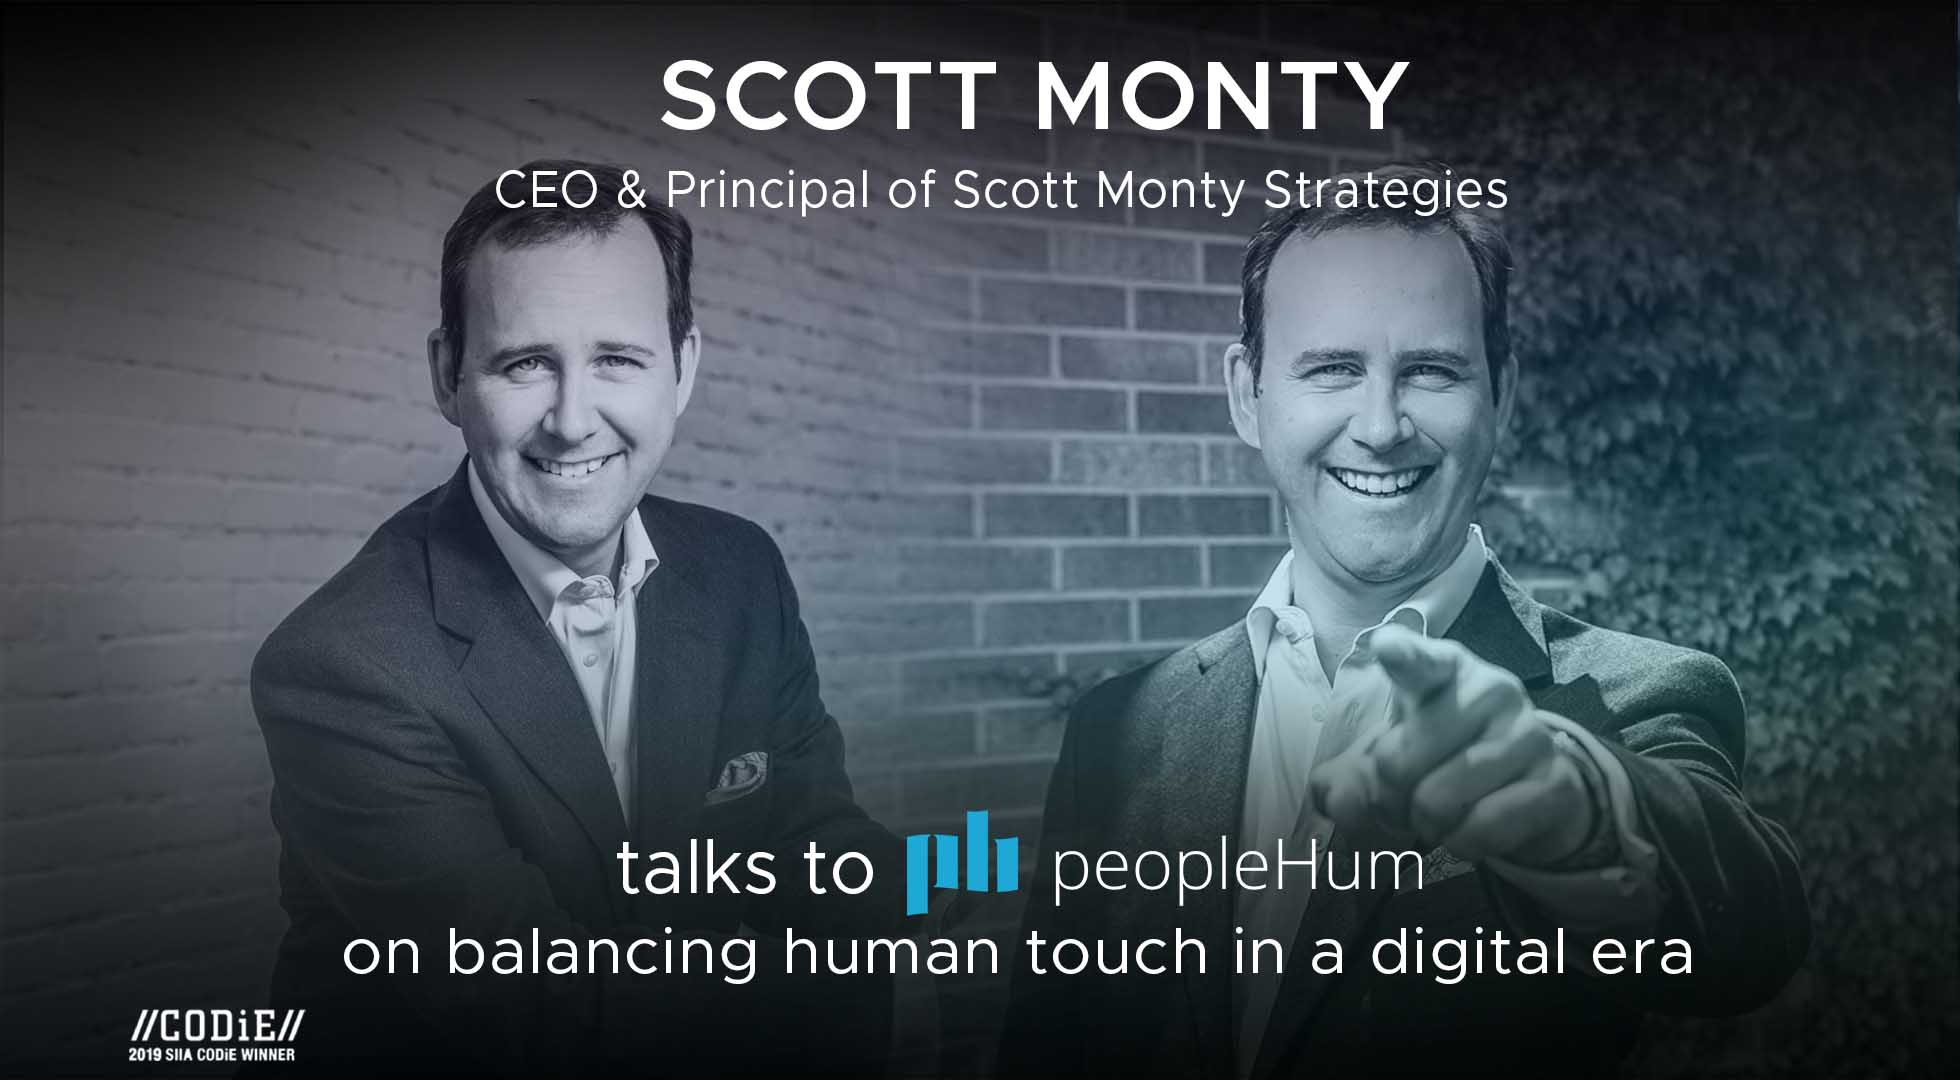 Balancing human touch in a digital era - Scott Monty [Interview]